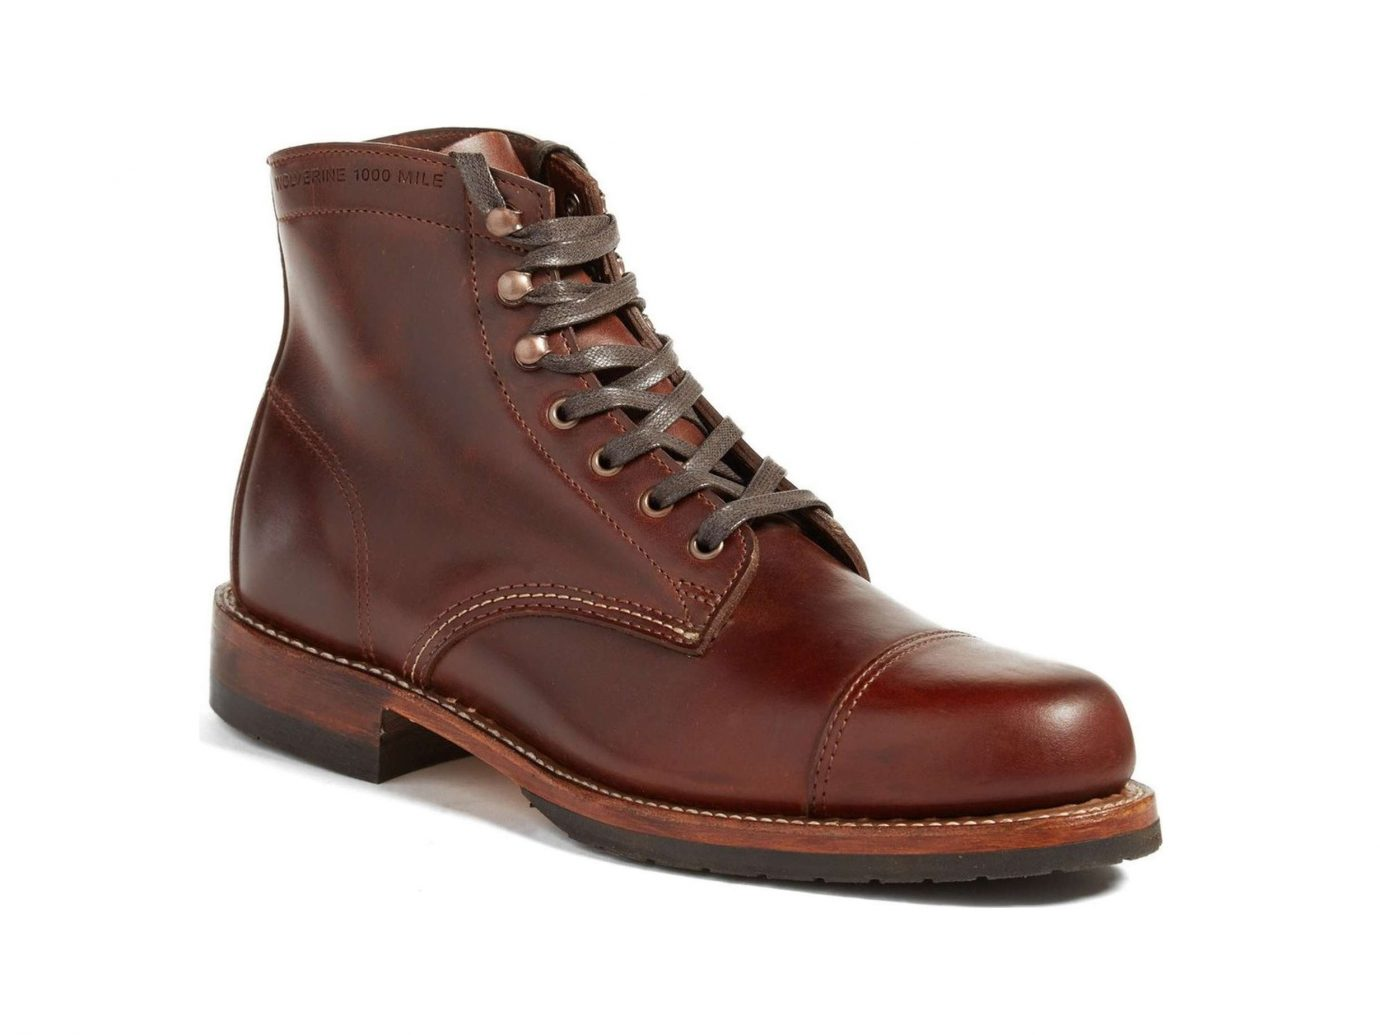 Style + Design Travel Shop clothing footwear boot brown leather indoor shoe work boots product black shoes feet walking shoe motorcycle boot tan